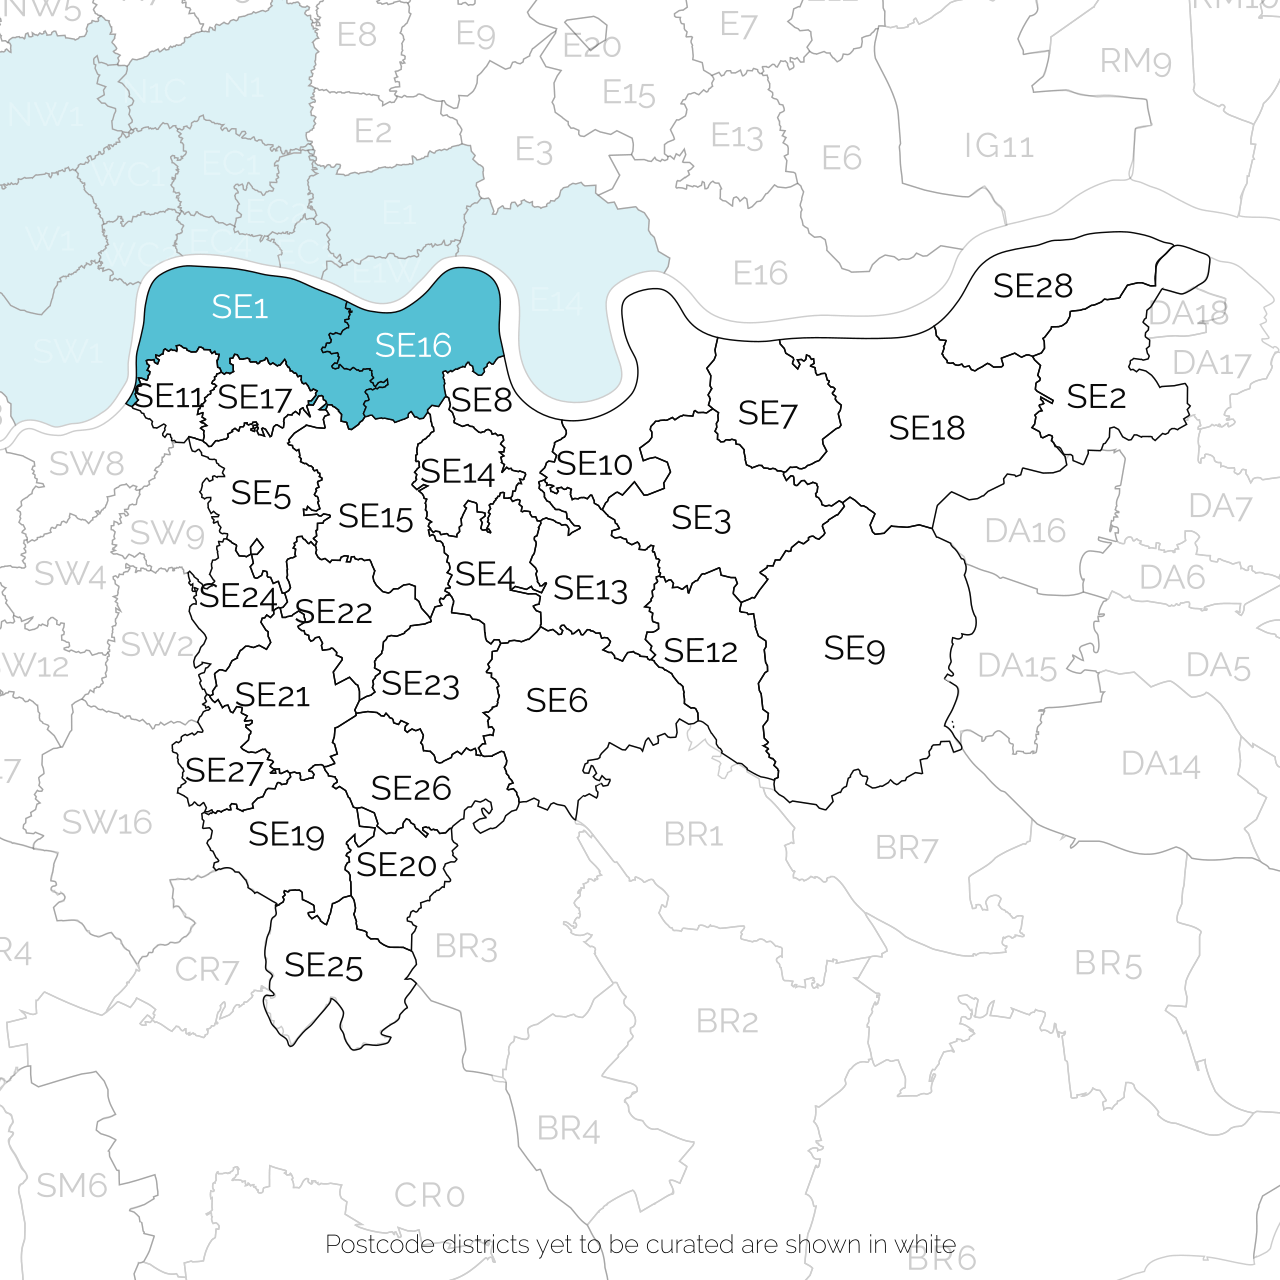 south east london postcode districts available for papercut map commissions